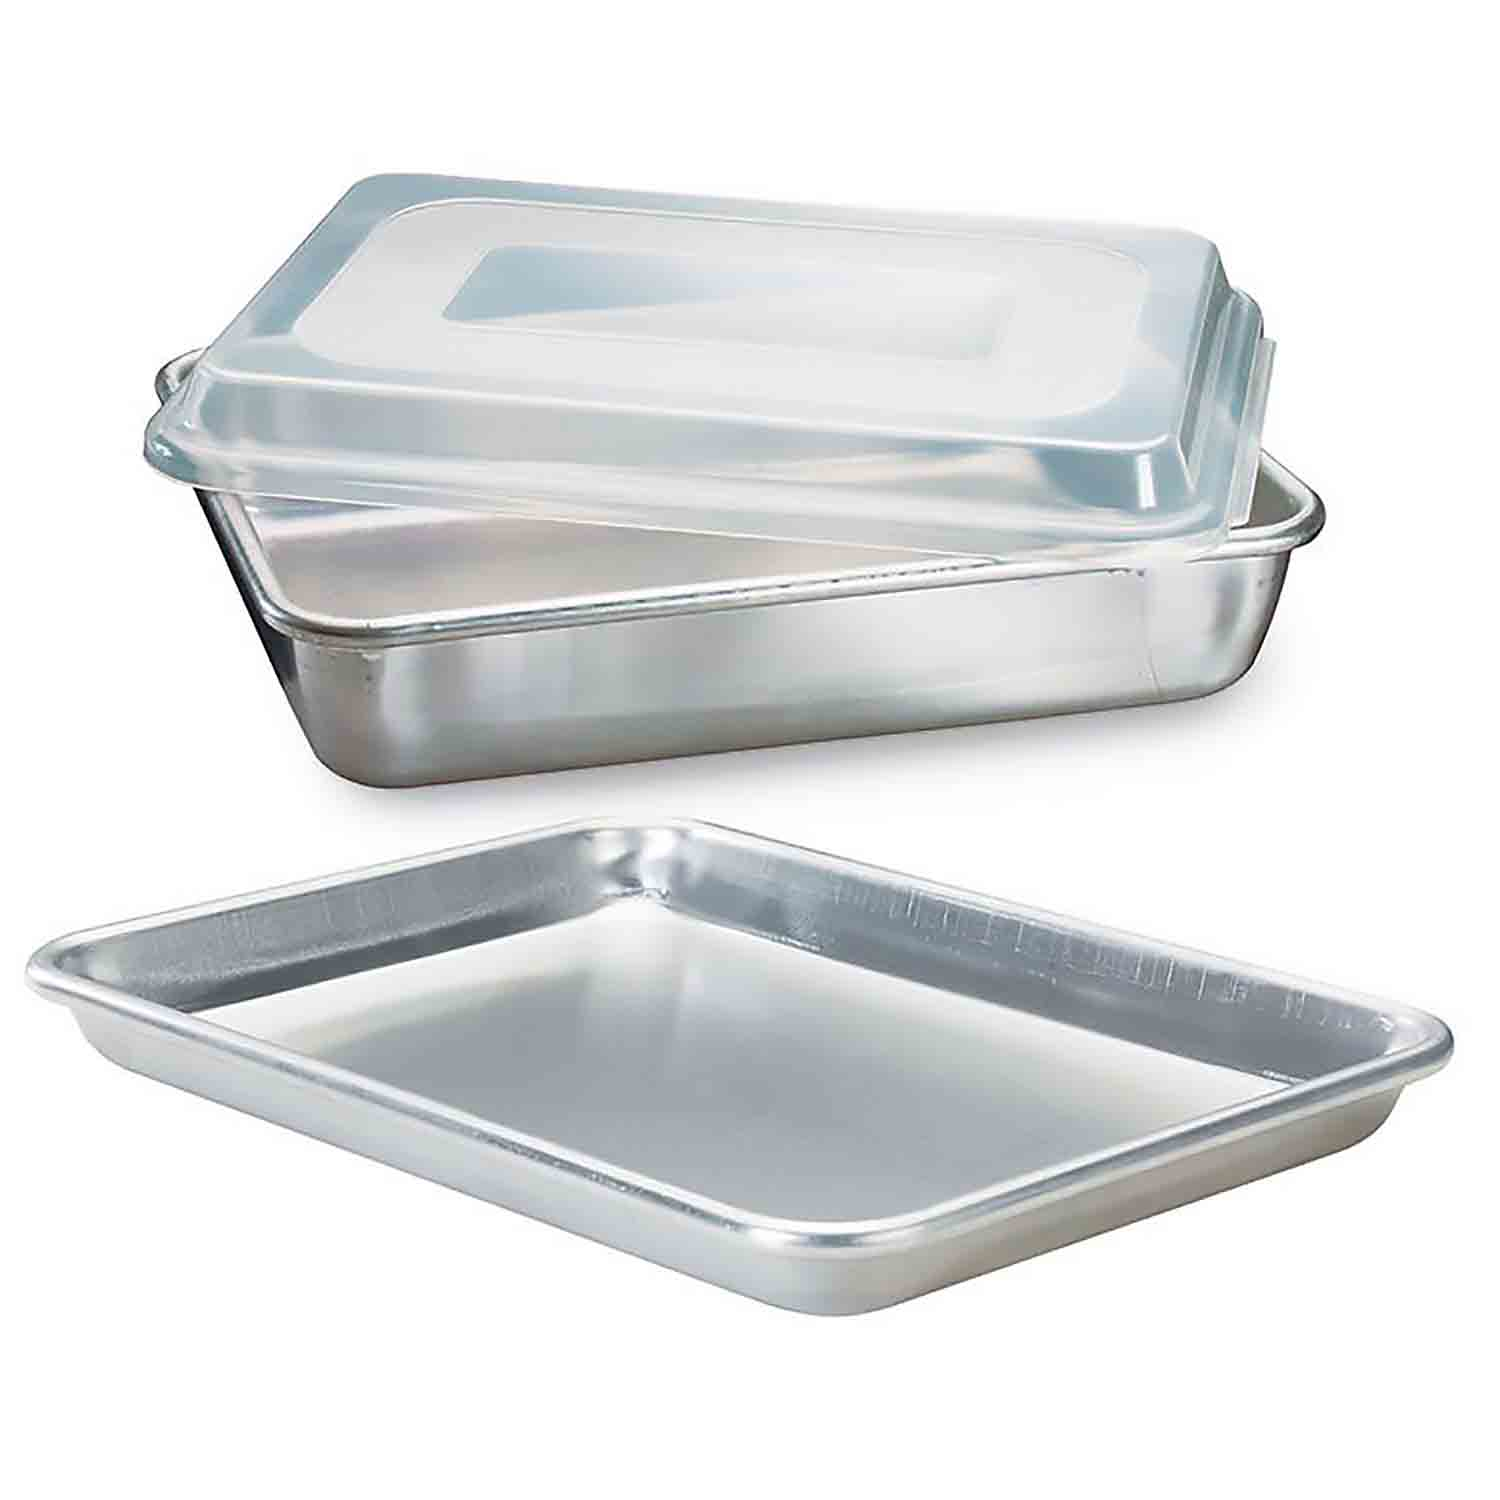 3 Pc. Baker's Set Rectangle Quarter Sheet Cake Pans